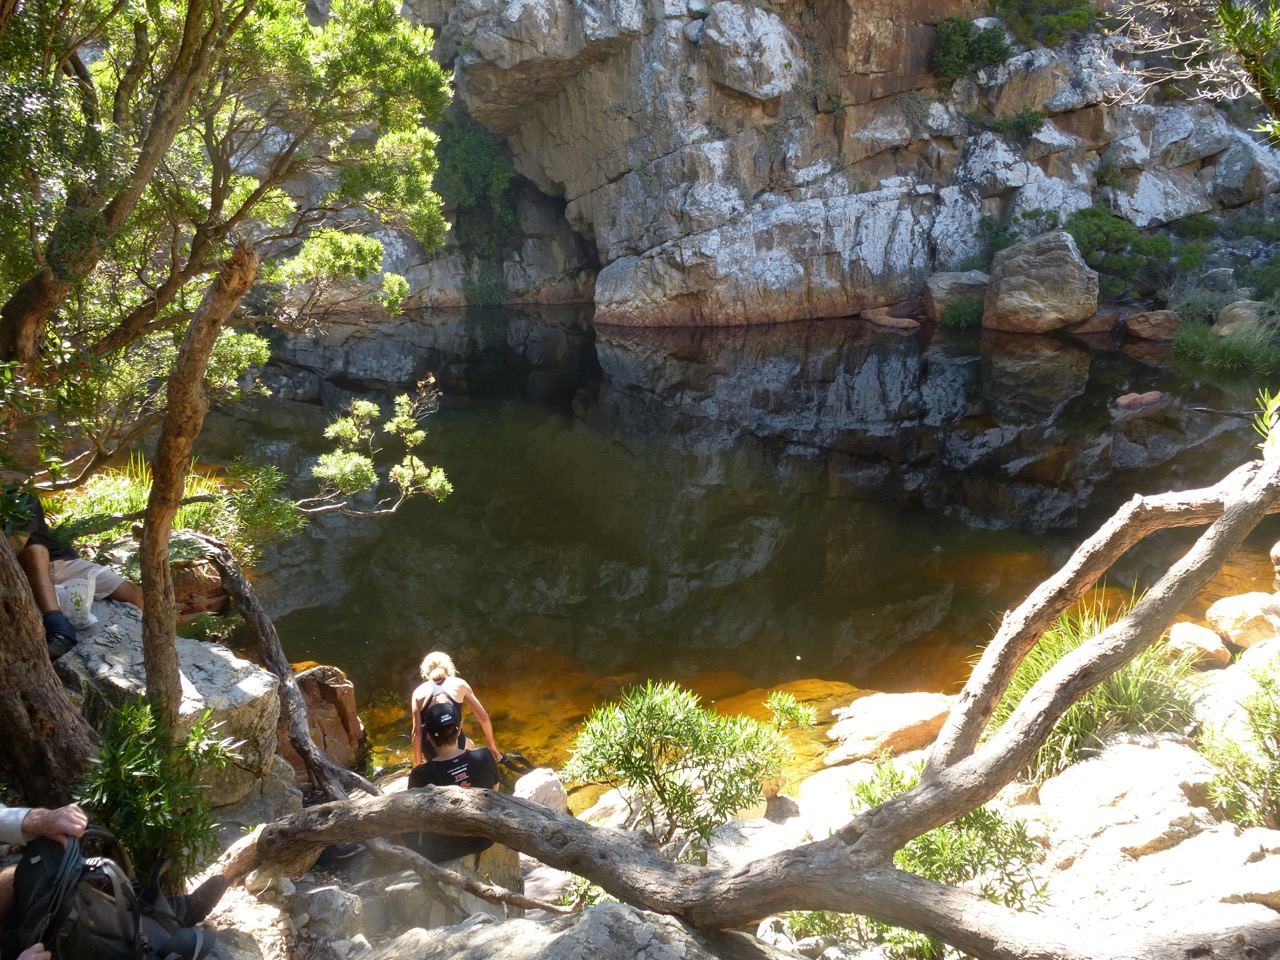 The mcsa cape town section crystal pools steenbras river gorge - Crystal pools waterfall ...